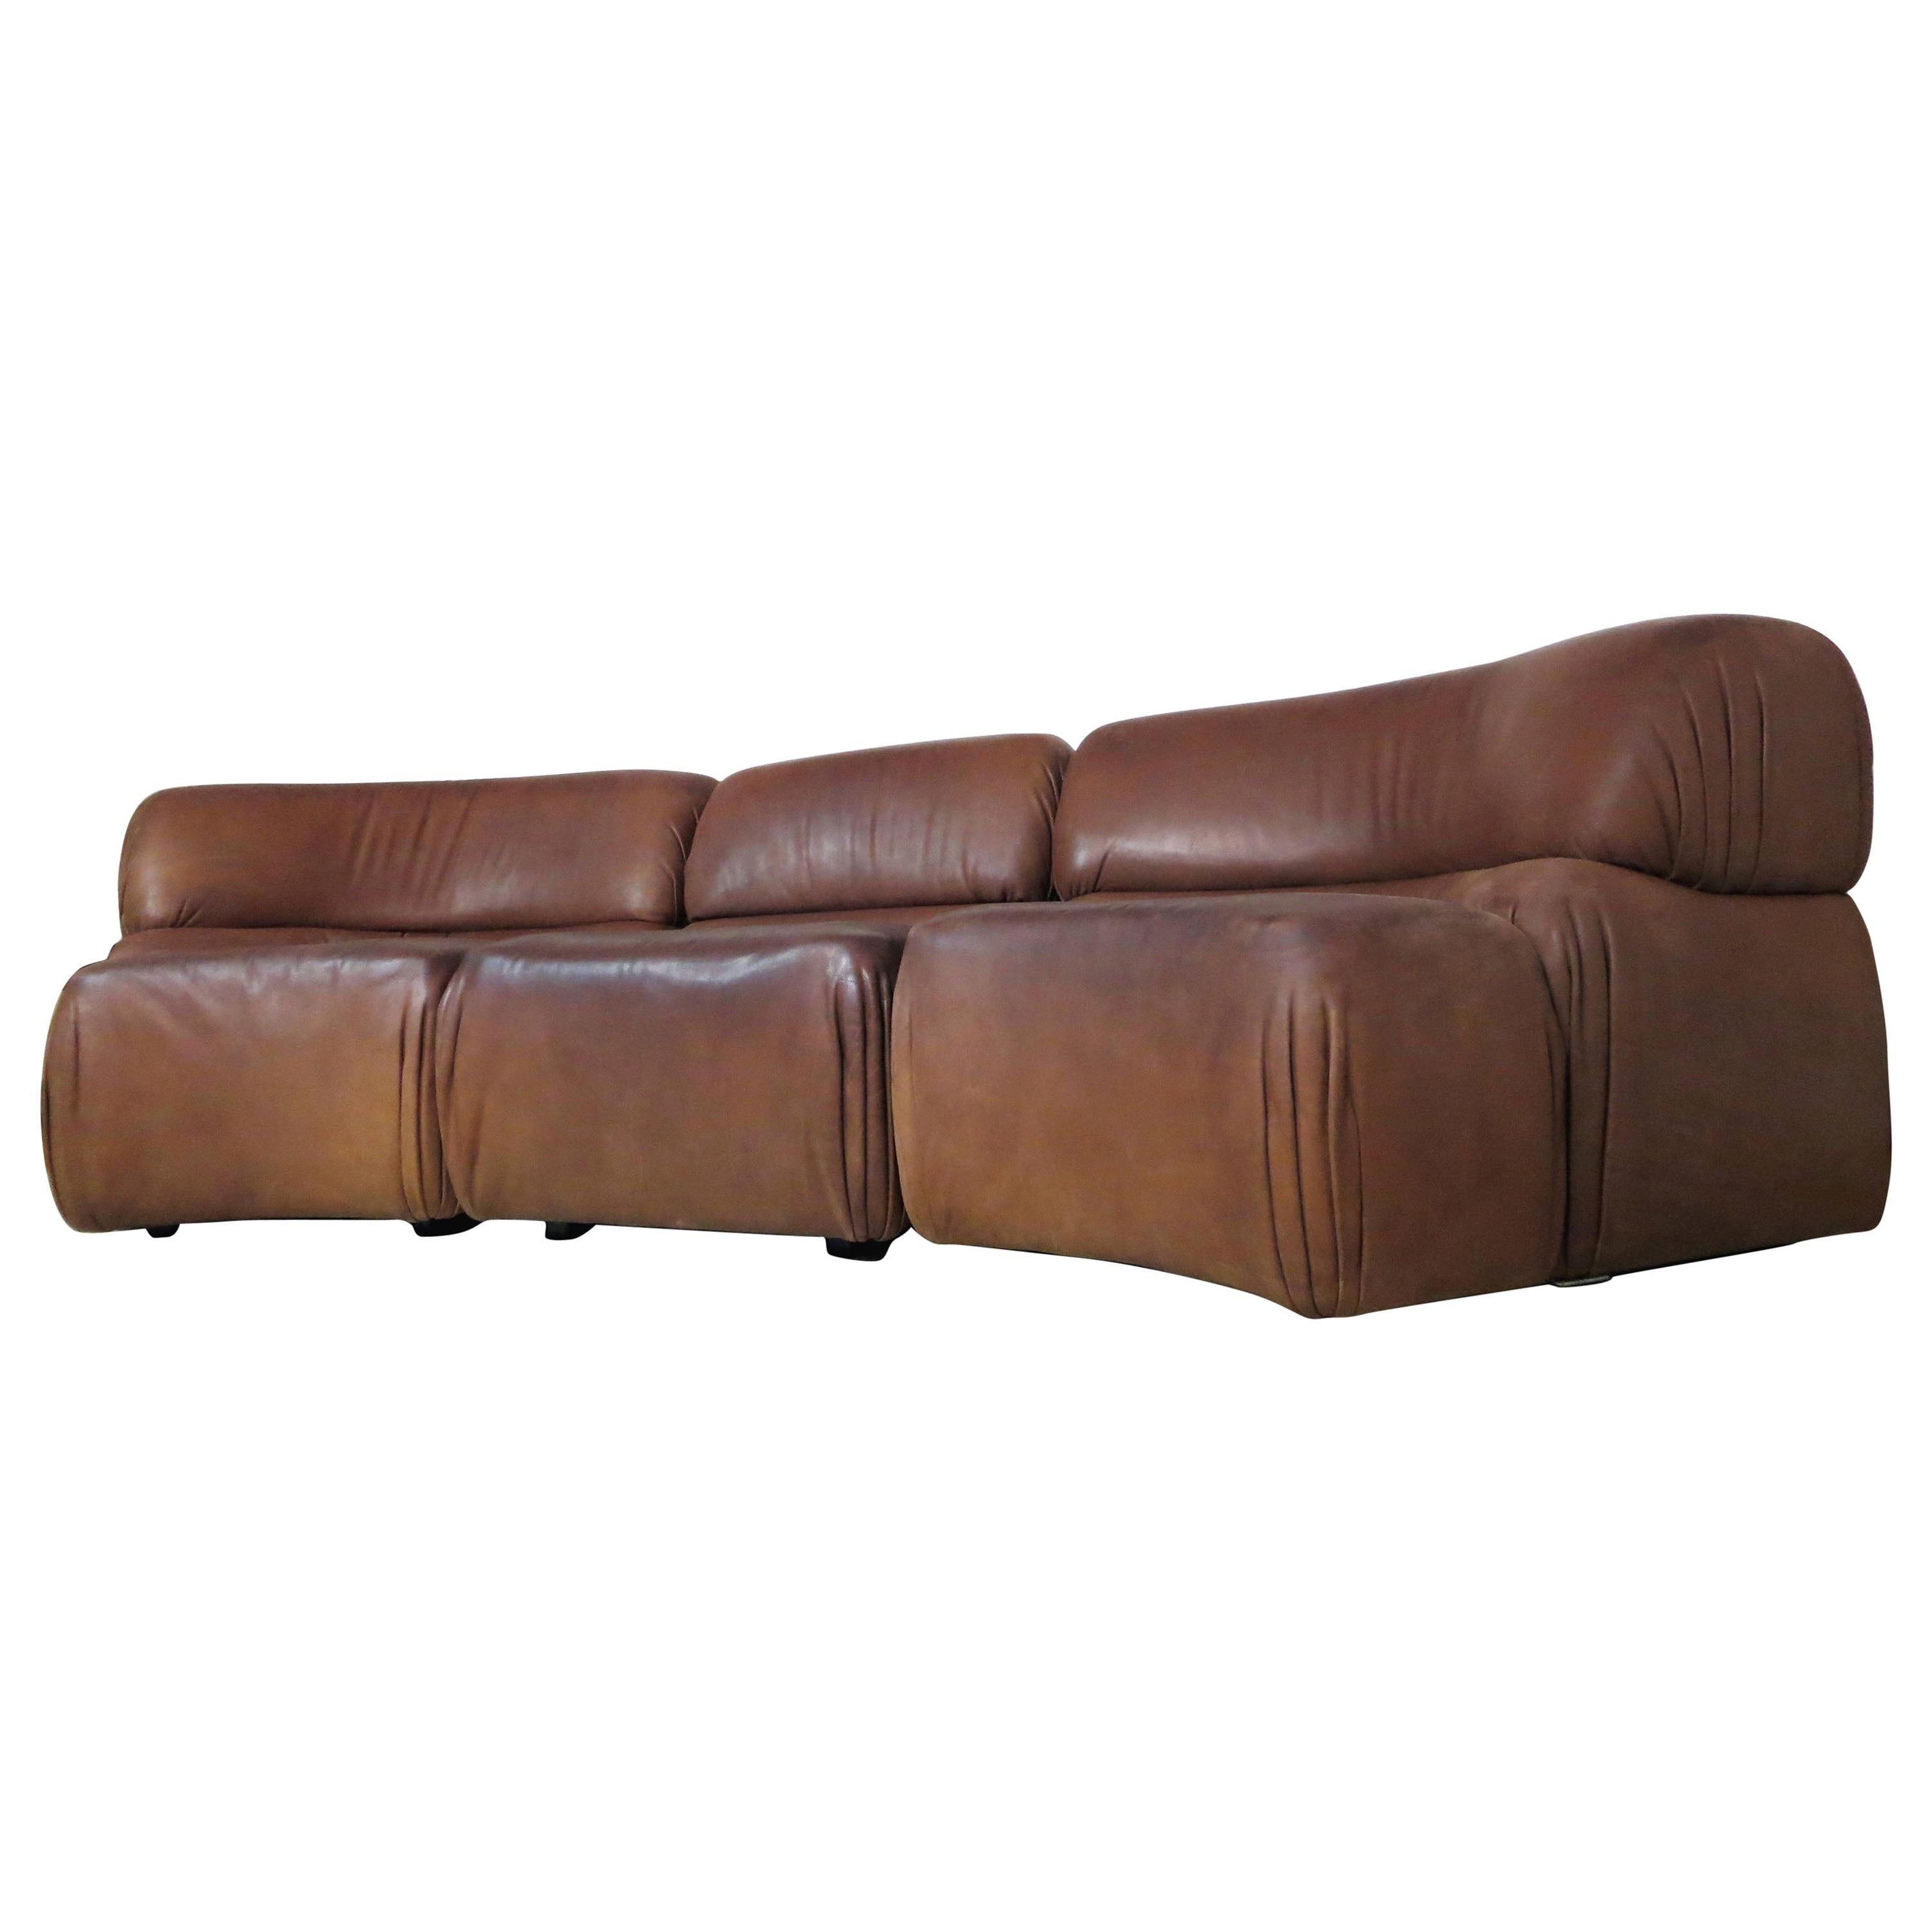 De Sede Cosmos Modular Sectional Cognac Leather Curved Lounge Vintage Sofa 1970s